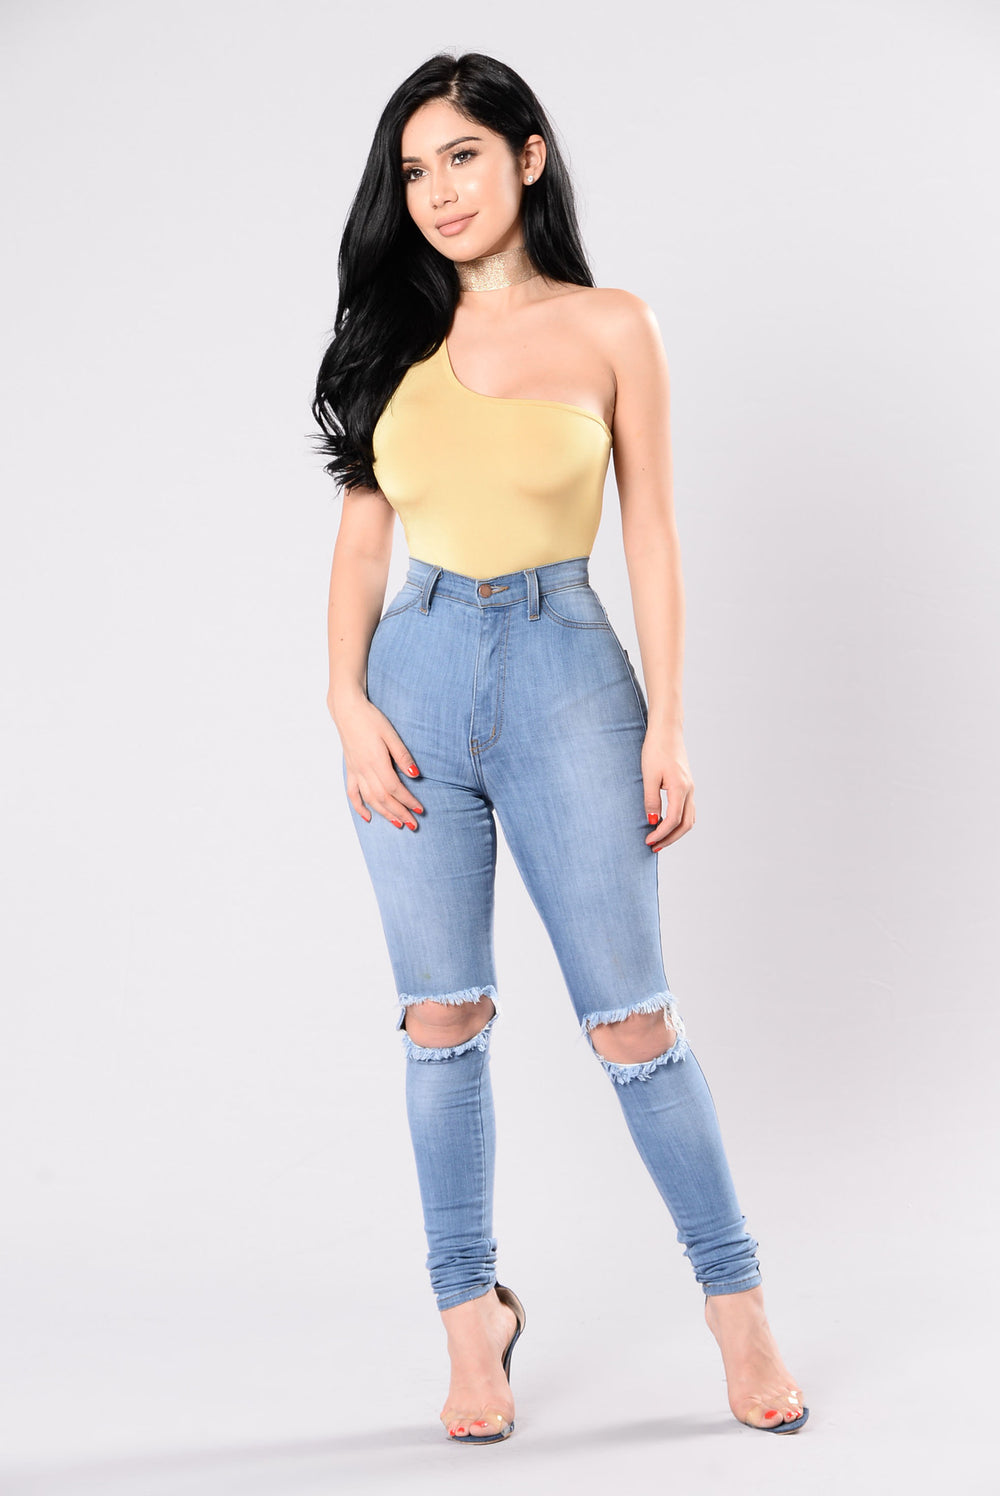 Never Gonna Give You Up Bodysuit - Mustard